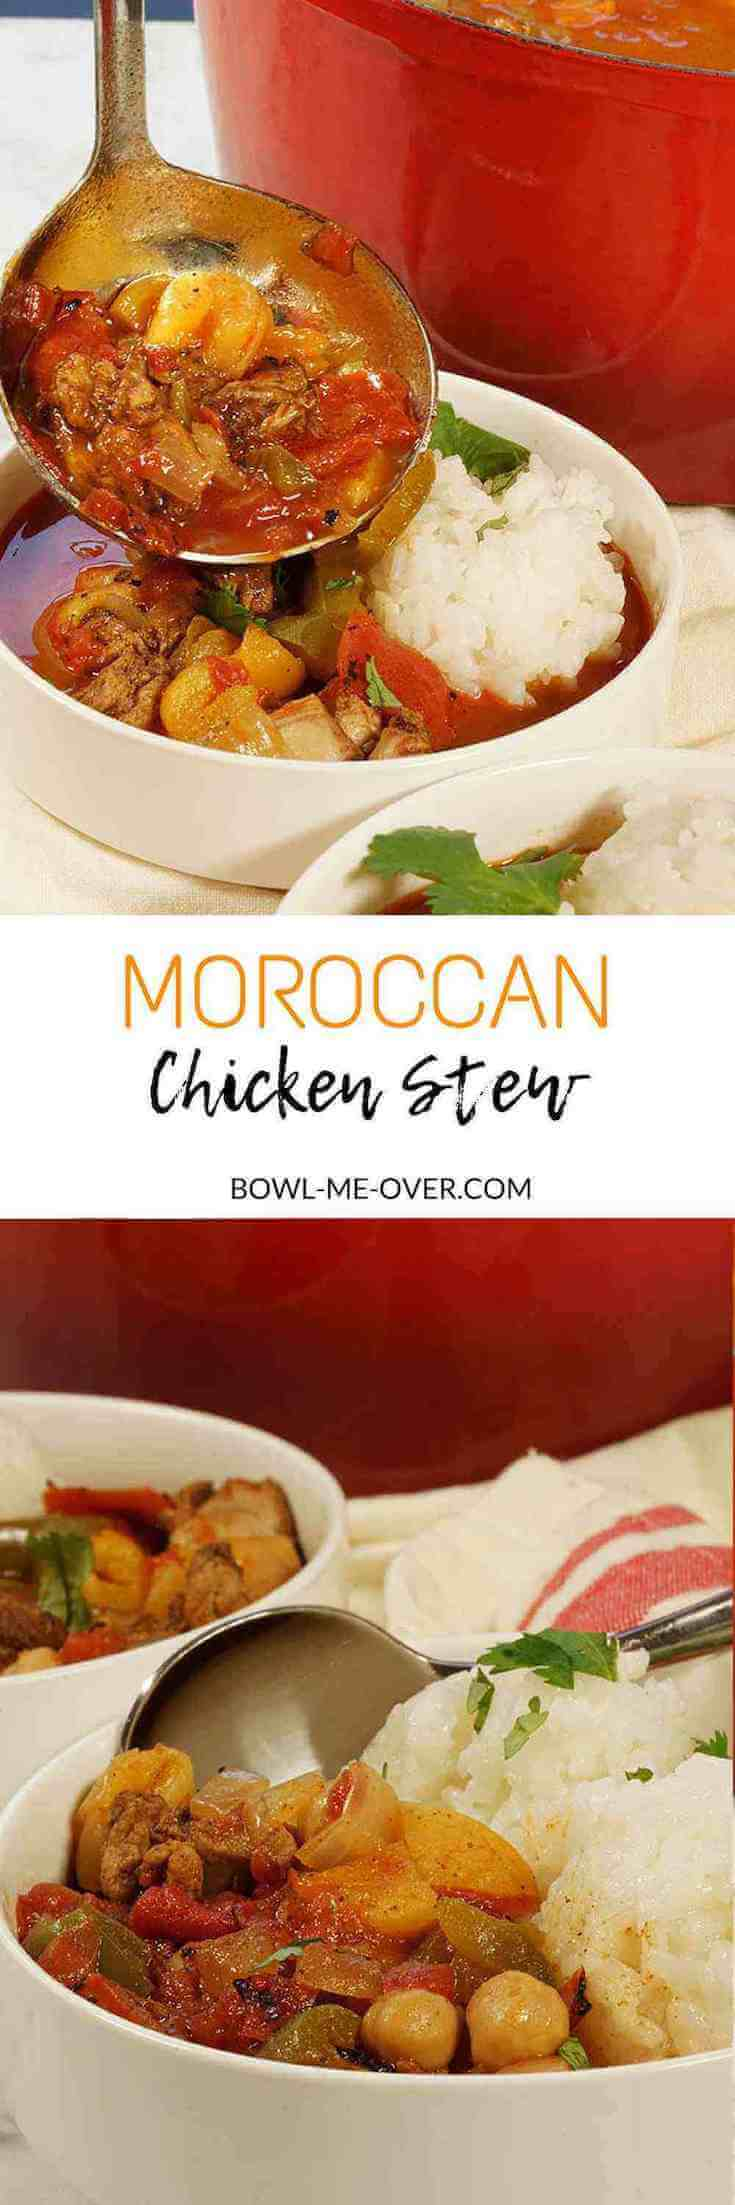 White bowls filled with Moroccan Chicken Stew with a ladle pouring another generous helping to enjoy!